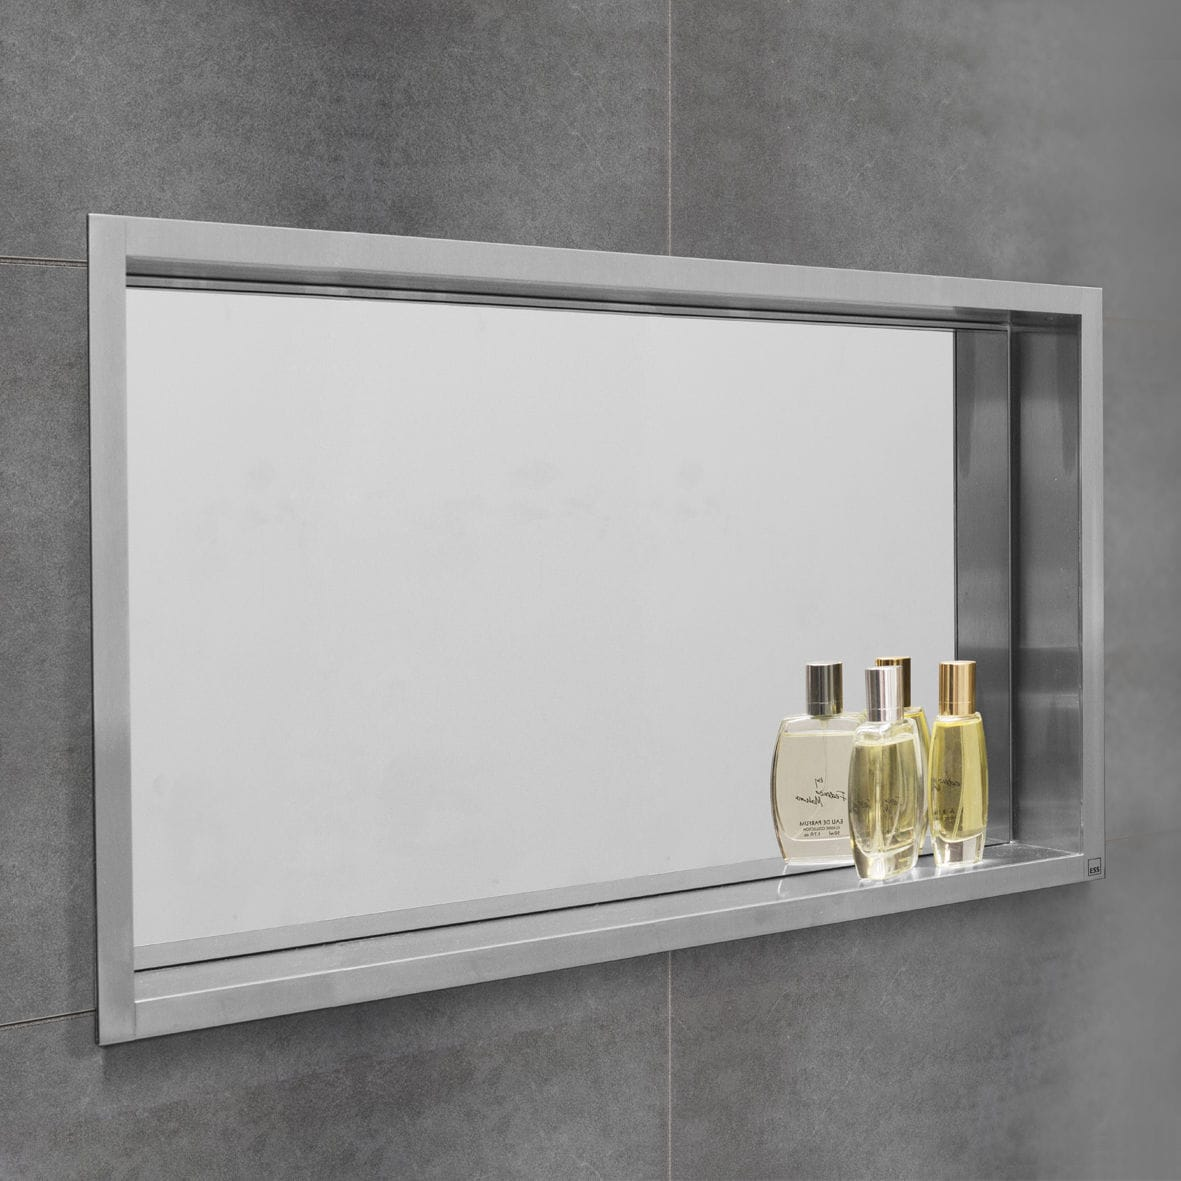 Mirrored Bathroom Wall Cabinet Ess Container Box Wall Niche With